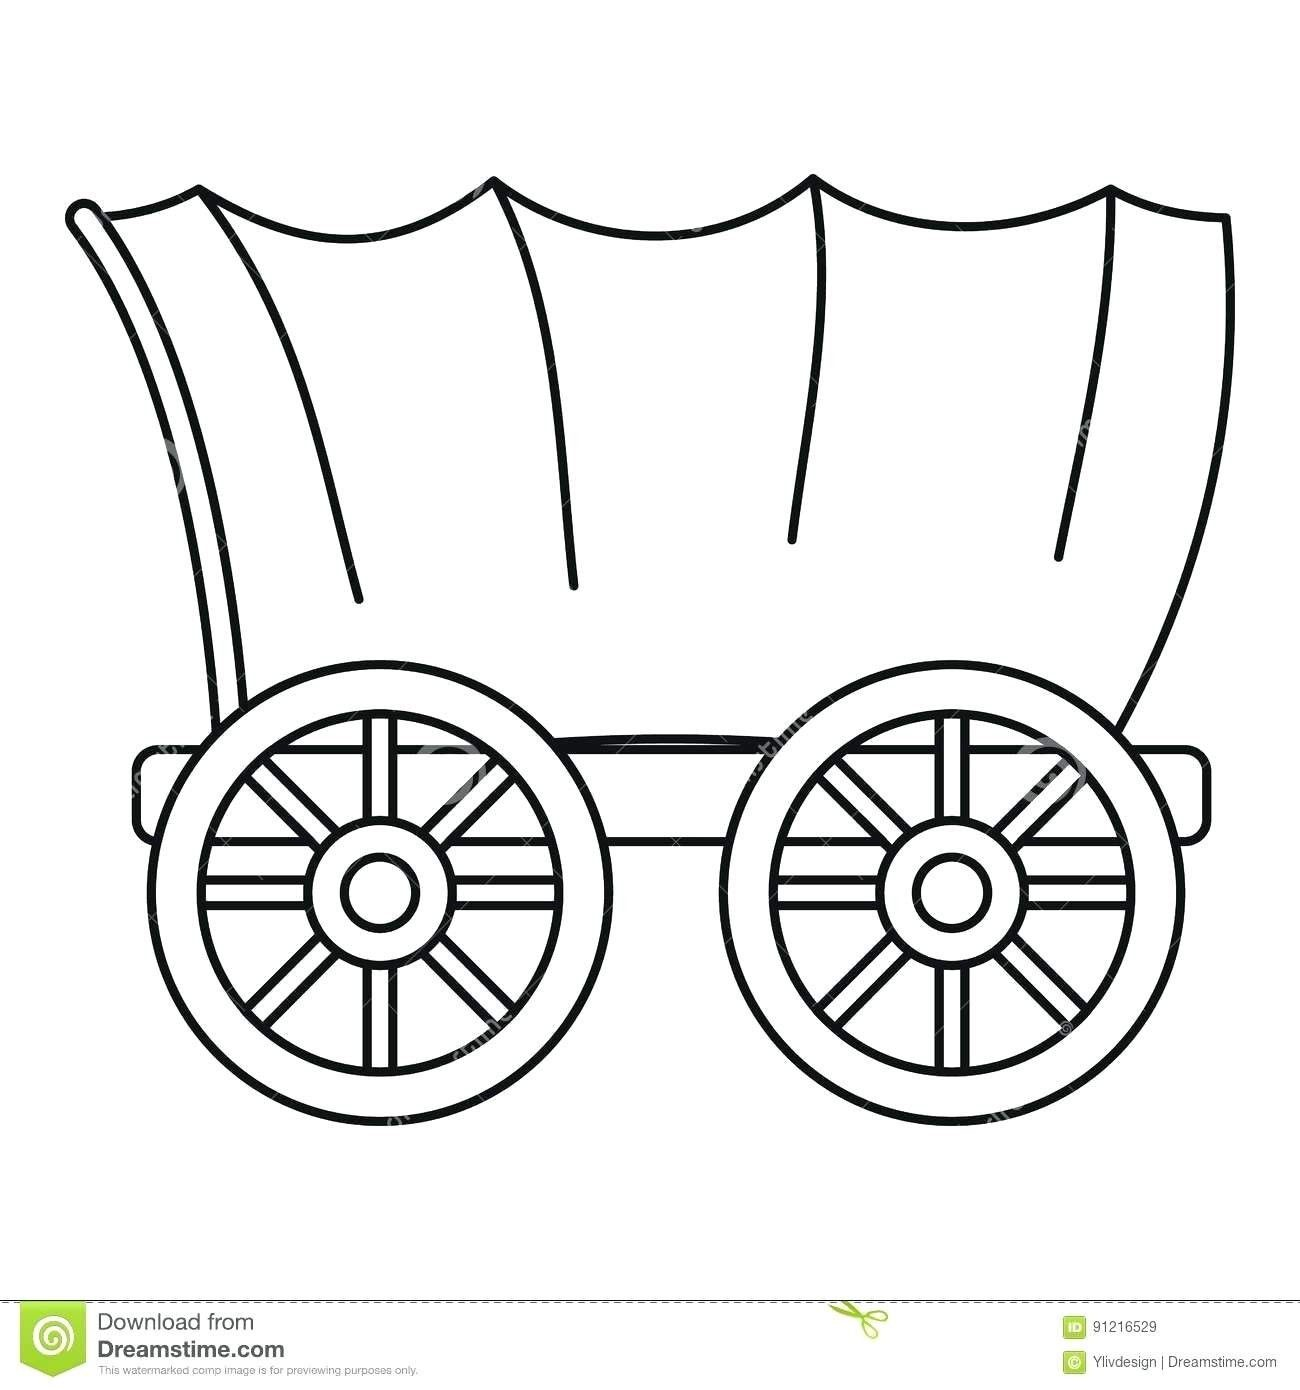 Google Image Result For Http Saglik Me Images Chuck Wagon Coloring Page Best Of Covered Sheet 25 And Horse Coloring Pages Coloring Pages Love Coloring Pages